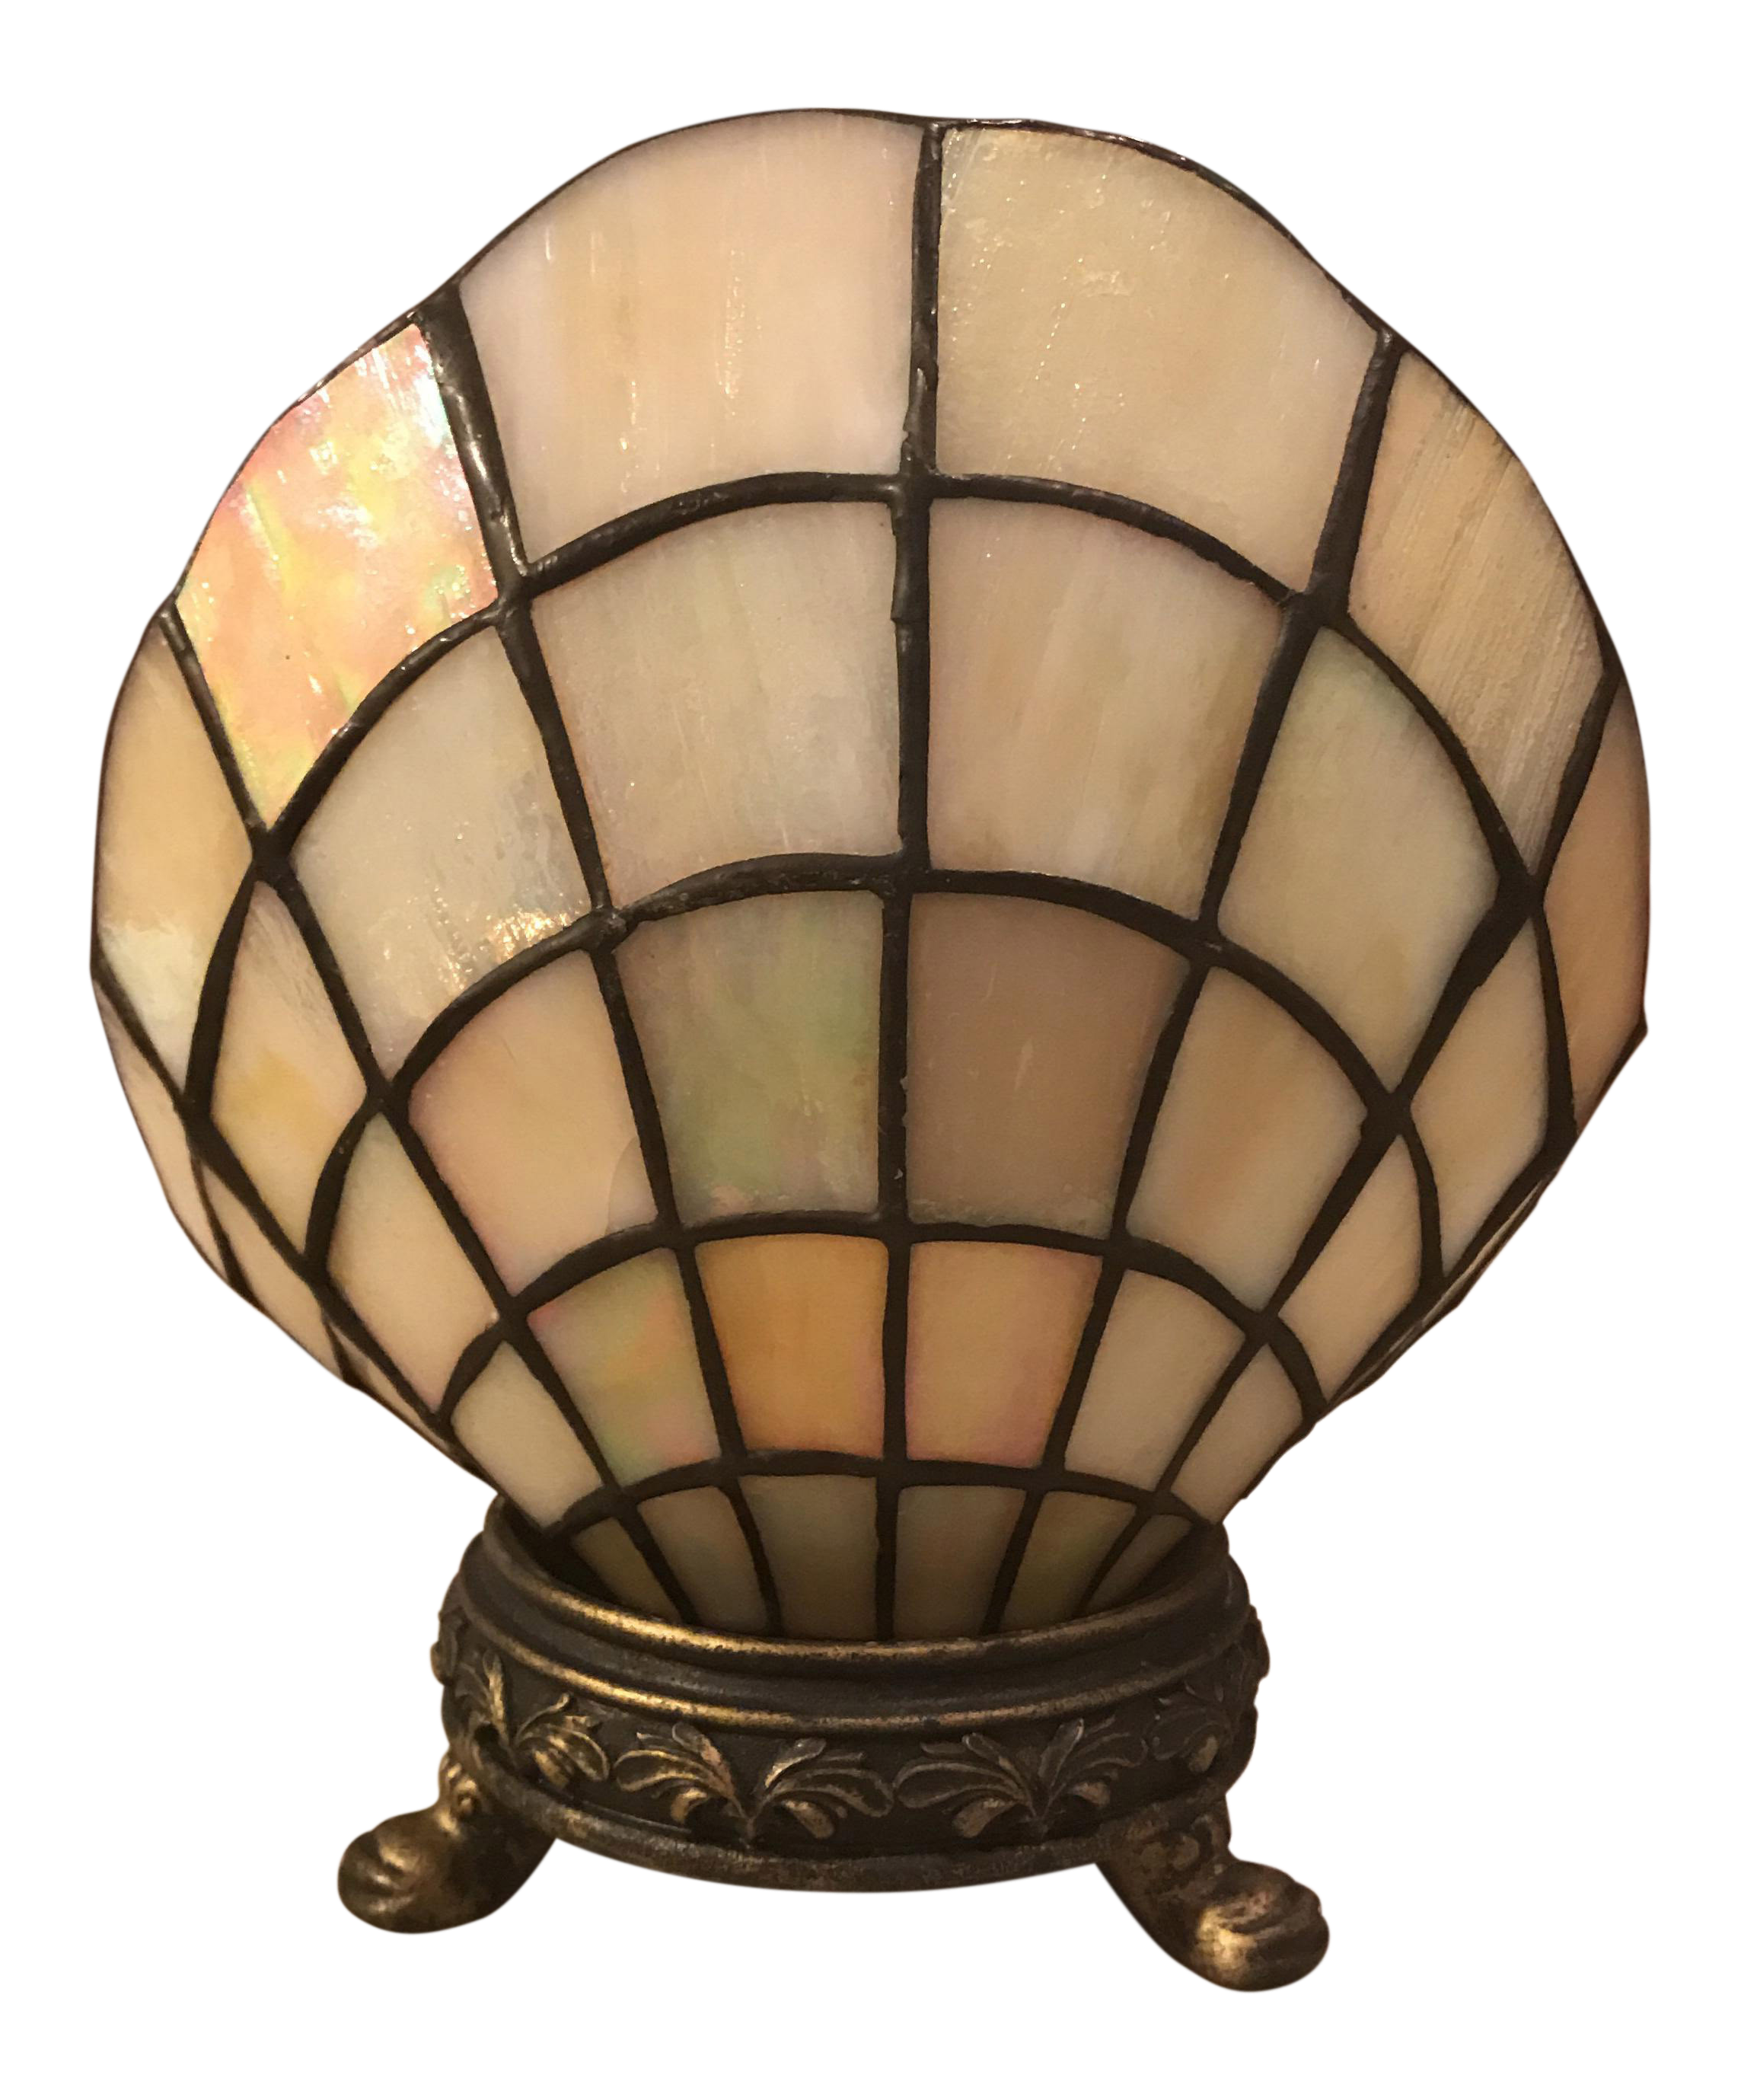 wayfair for lamp dragonfly thames sale pdx light pool stained lighting grand lamps reviews astoria table glass